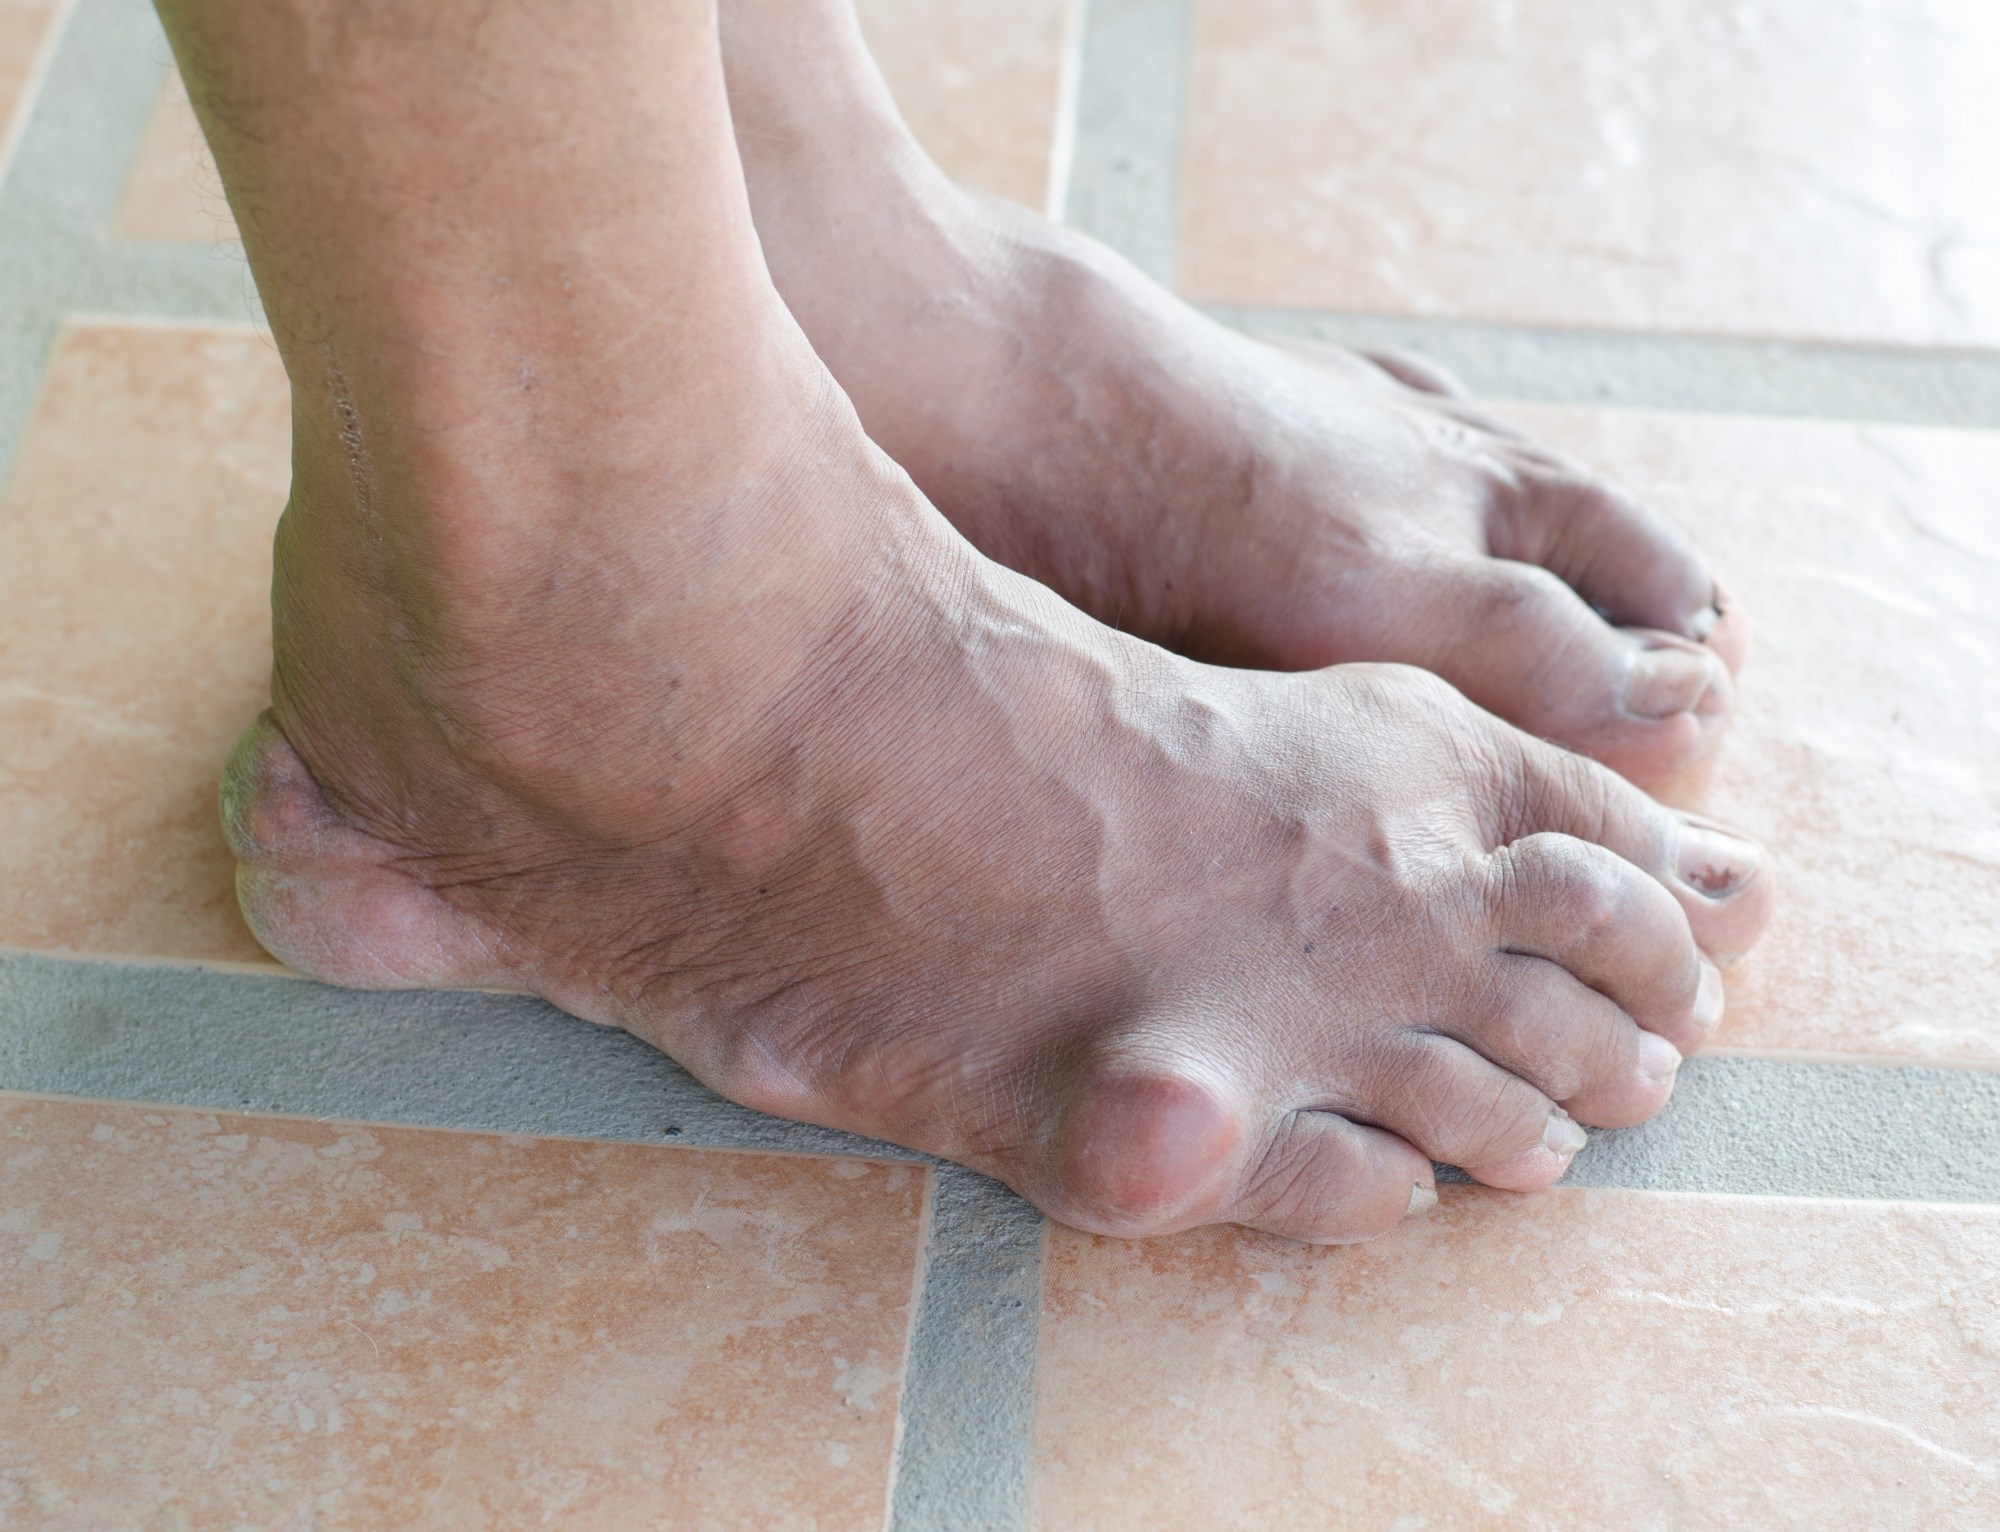 Ultrasound Reveals Decreased Urate Deposits After Urate-Lowering Therapy in Gout